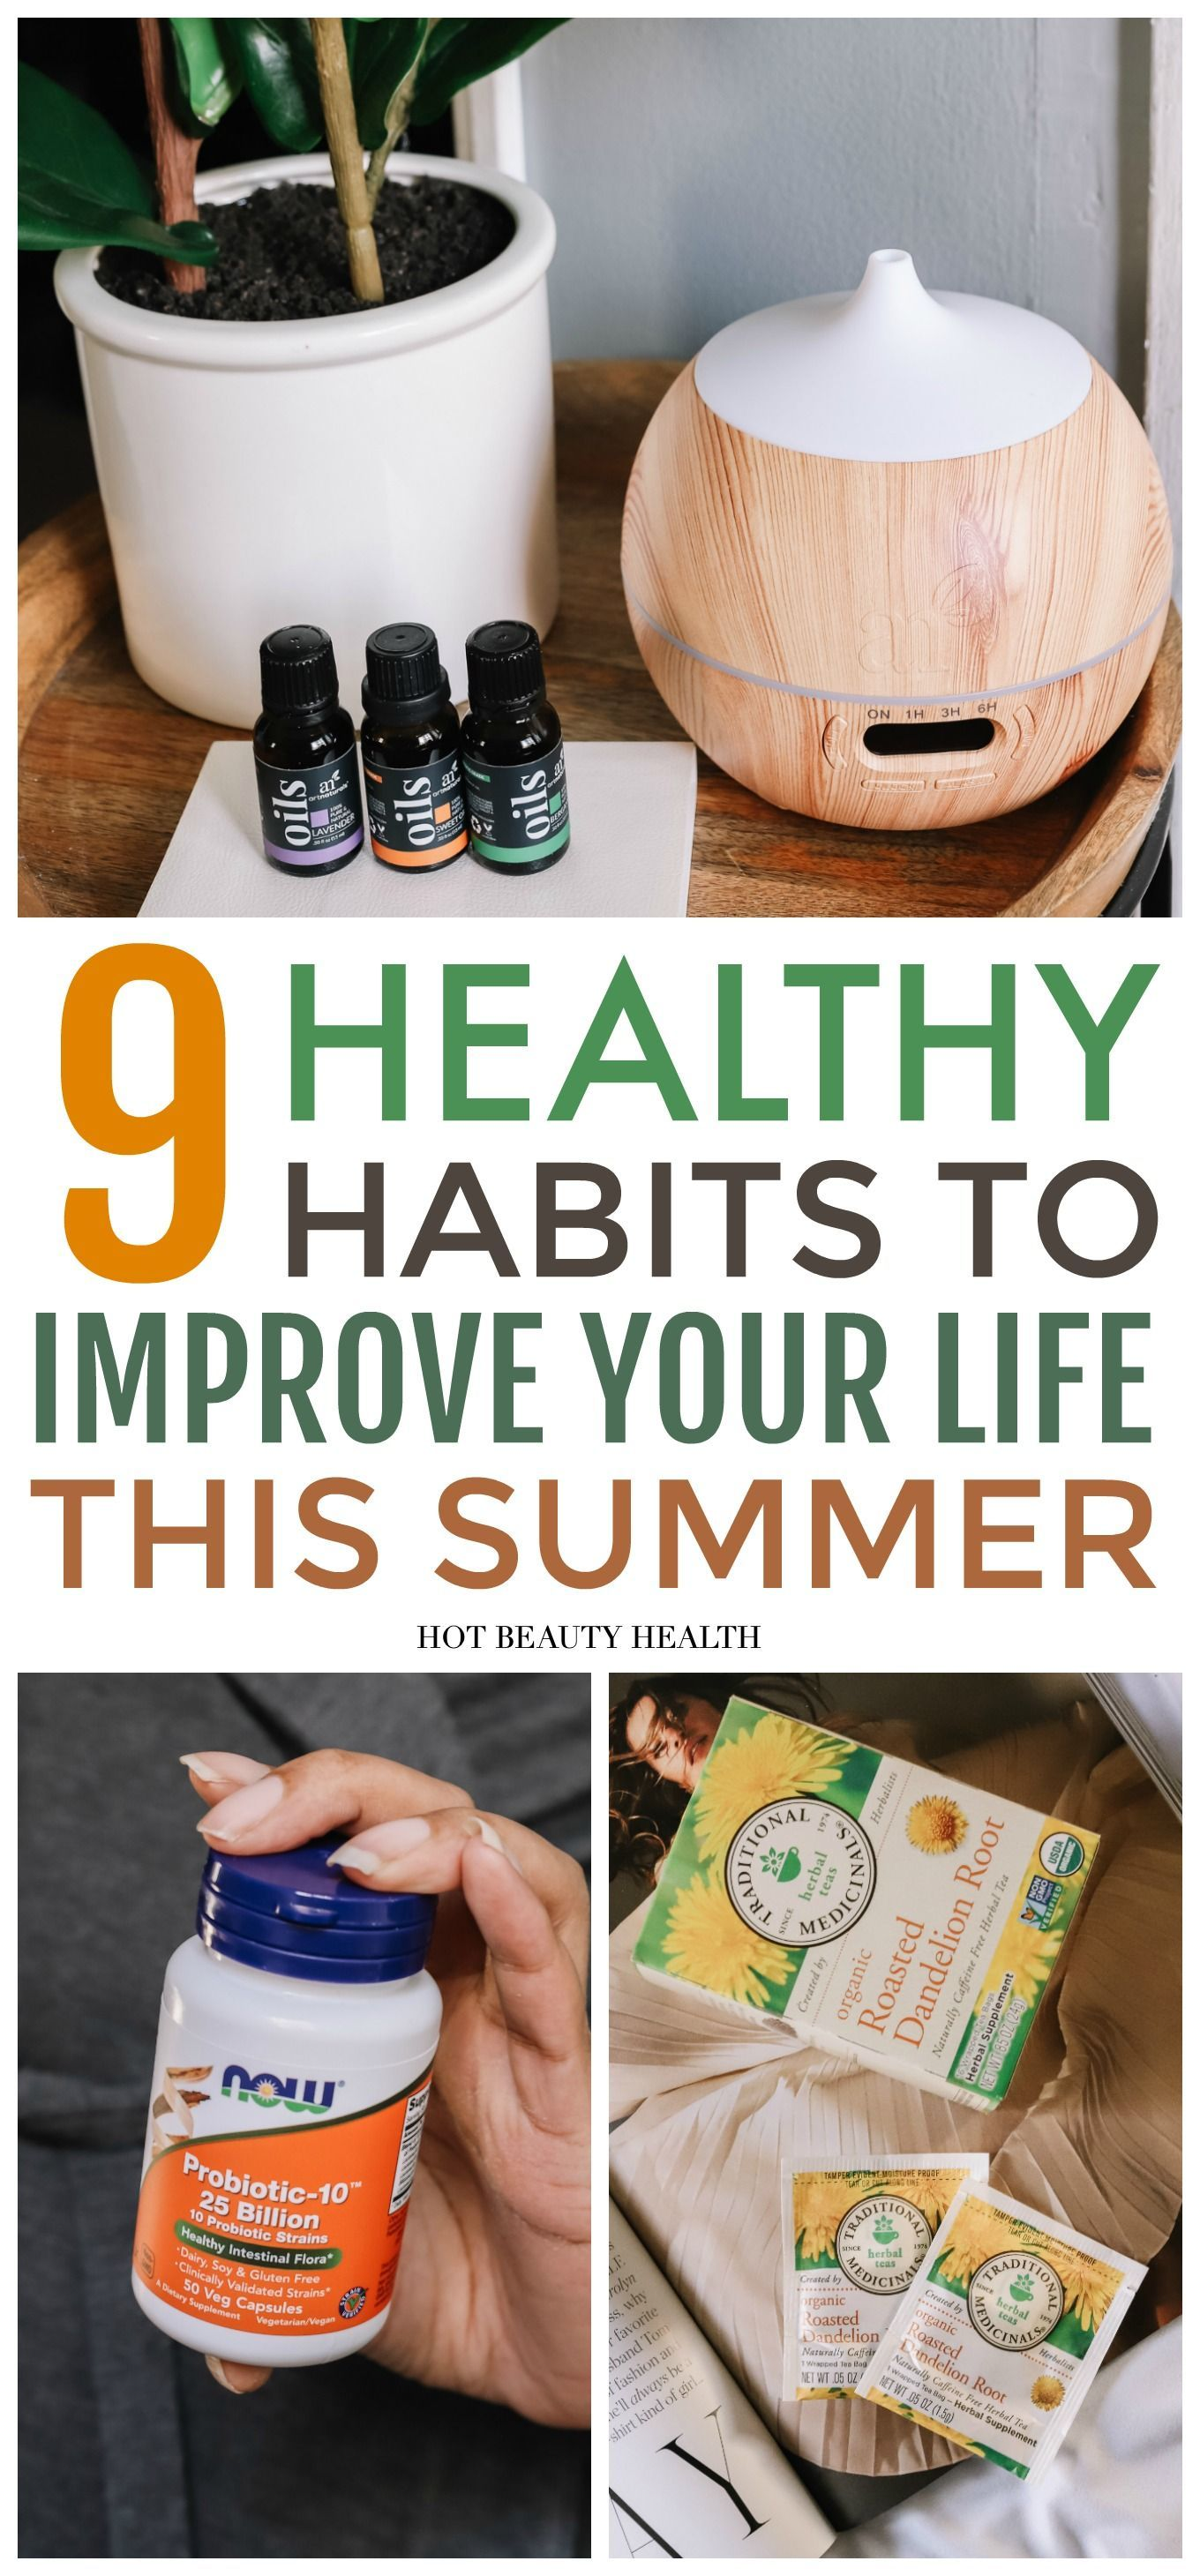 9 Healthy Habits To Adopt This Summer